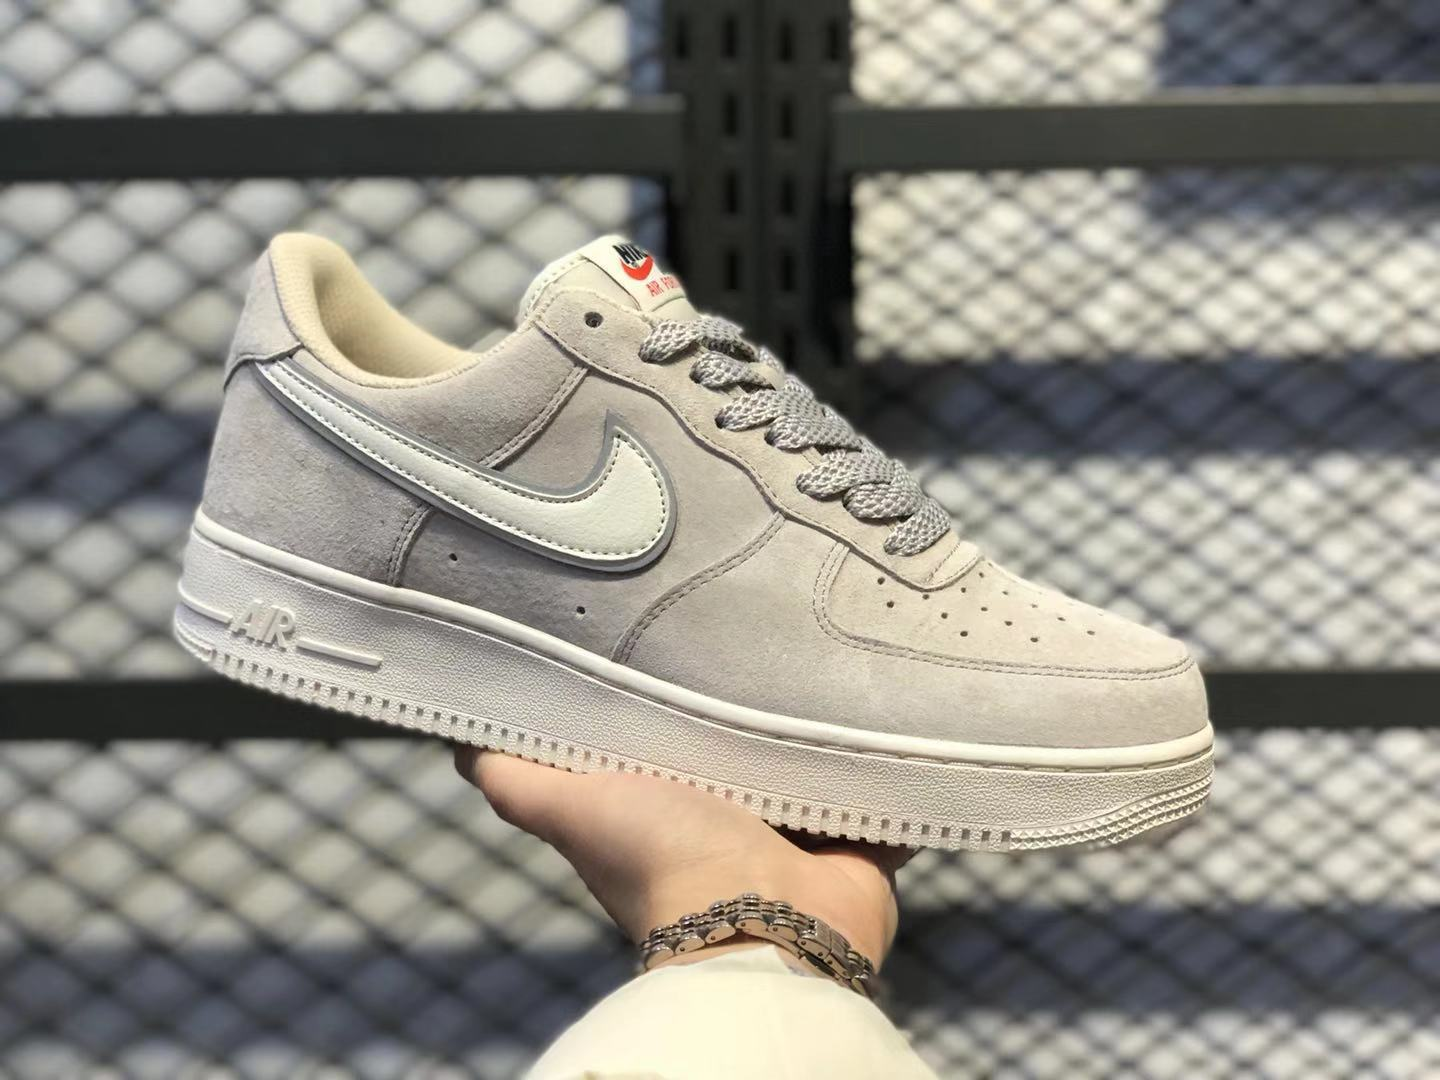 New Sale Nike Air Force 1'07 Low Beige/Grey Shoes AQ8741-101 ...